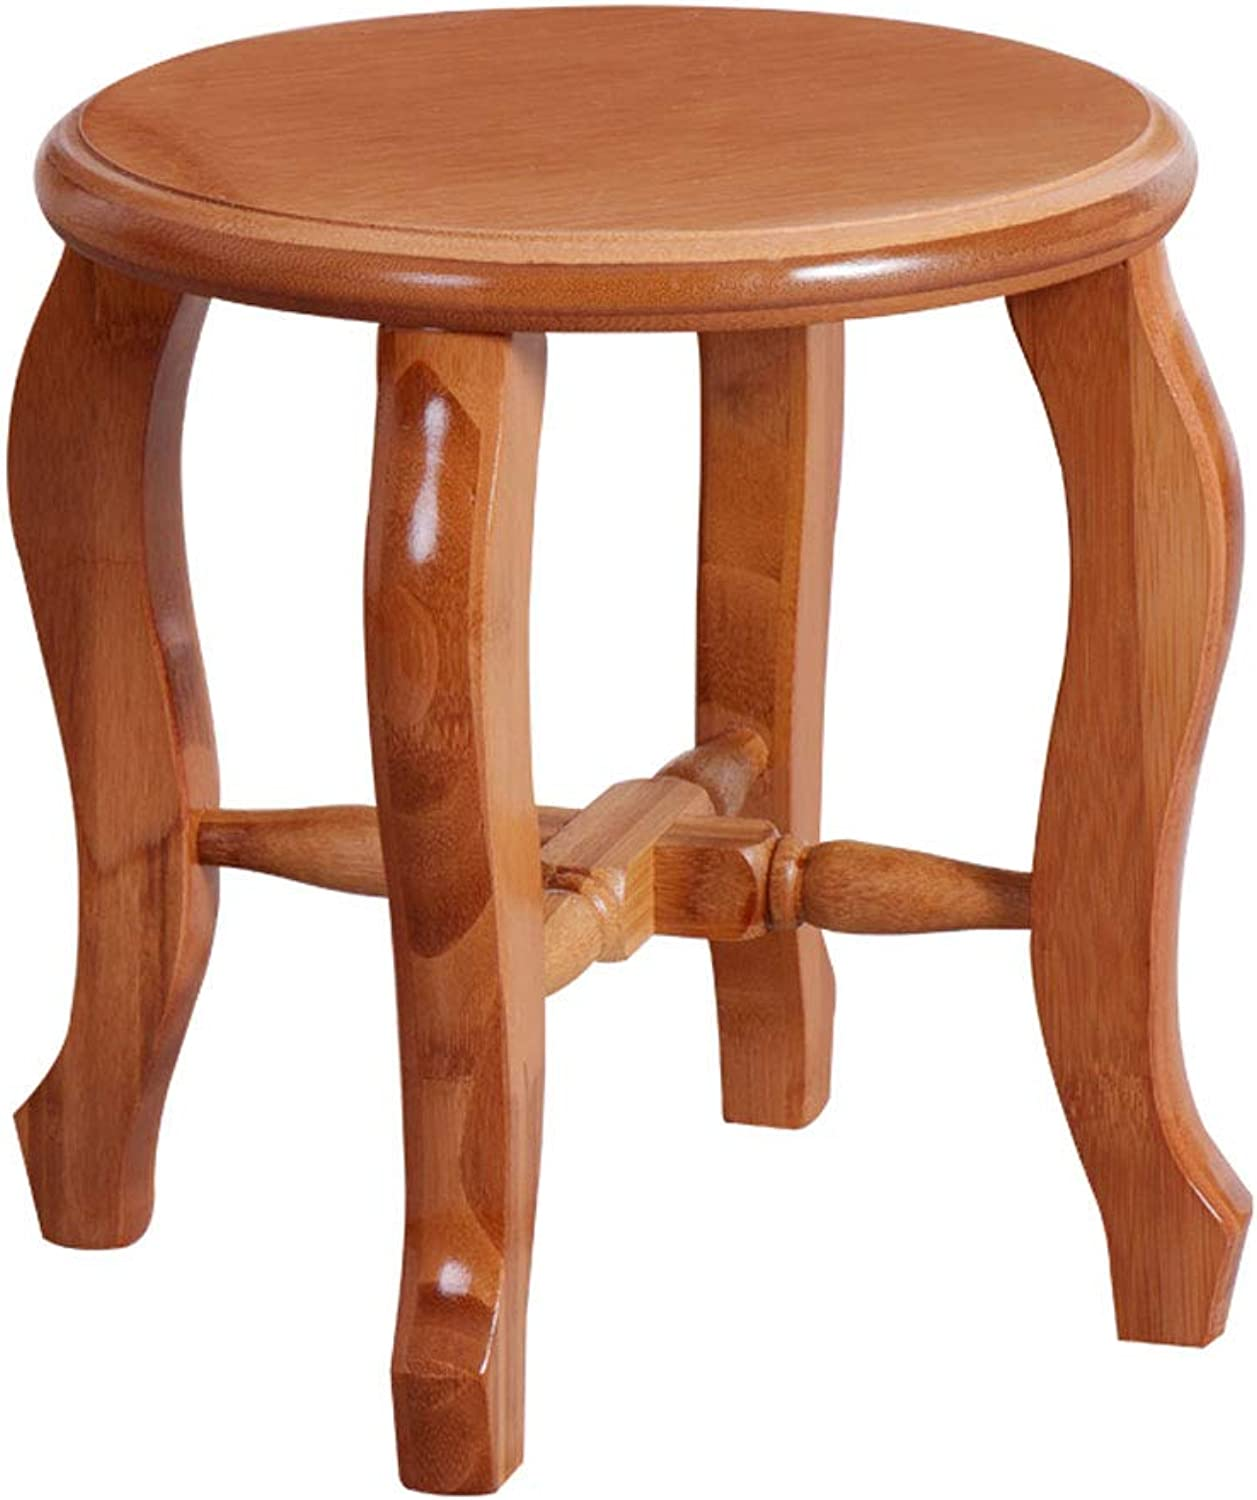 Stool Bamboo Home Antique Simple Assembled Solid color Sofa Coffee Table Footstool V (Size   L26CMXW26CMXH28CM)